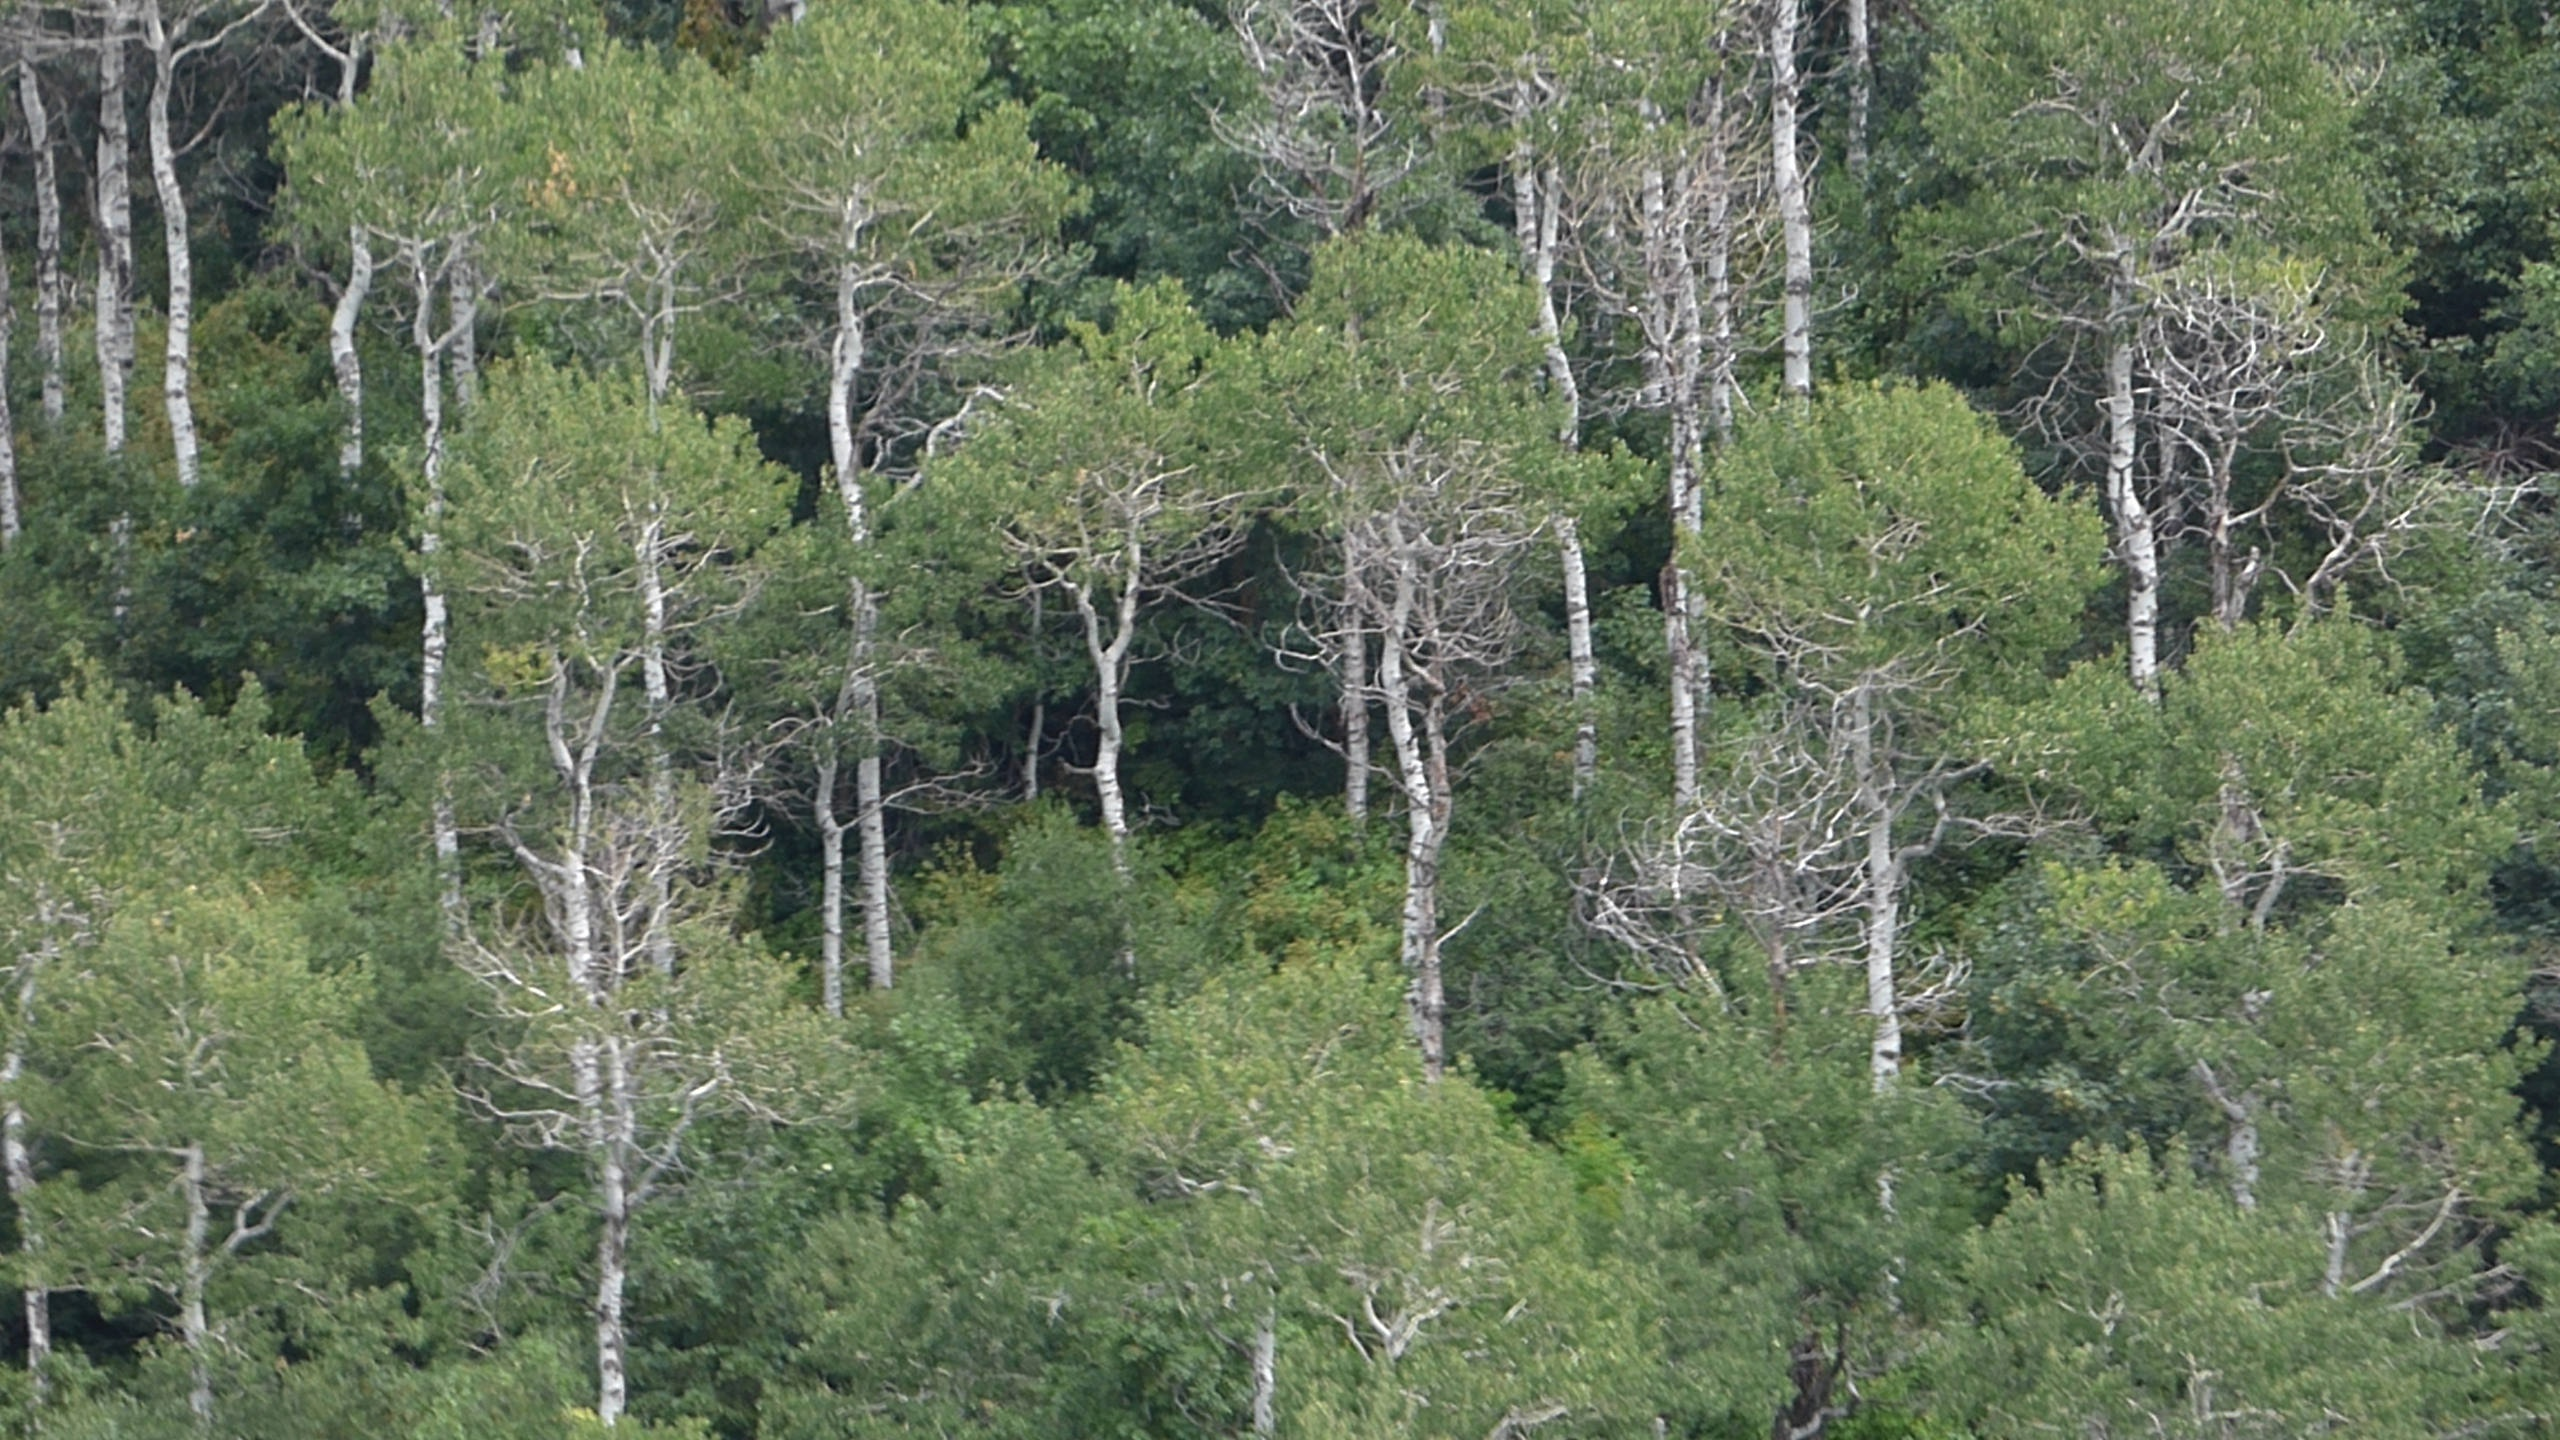 Why do we say 'One can't see the wood for the trees' when it ...